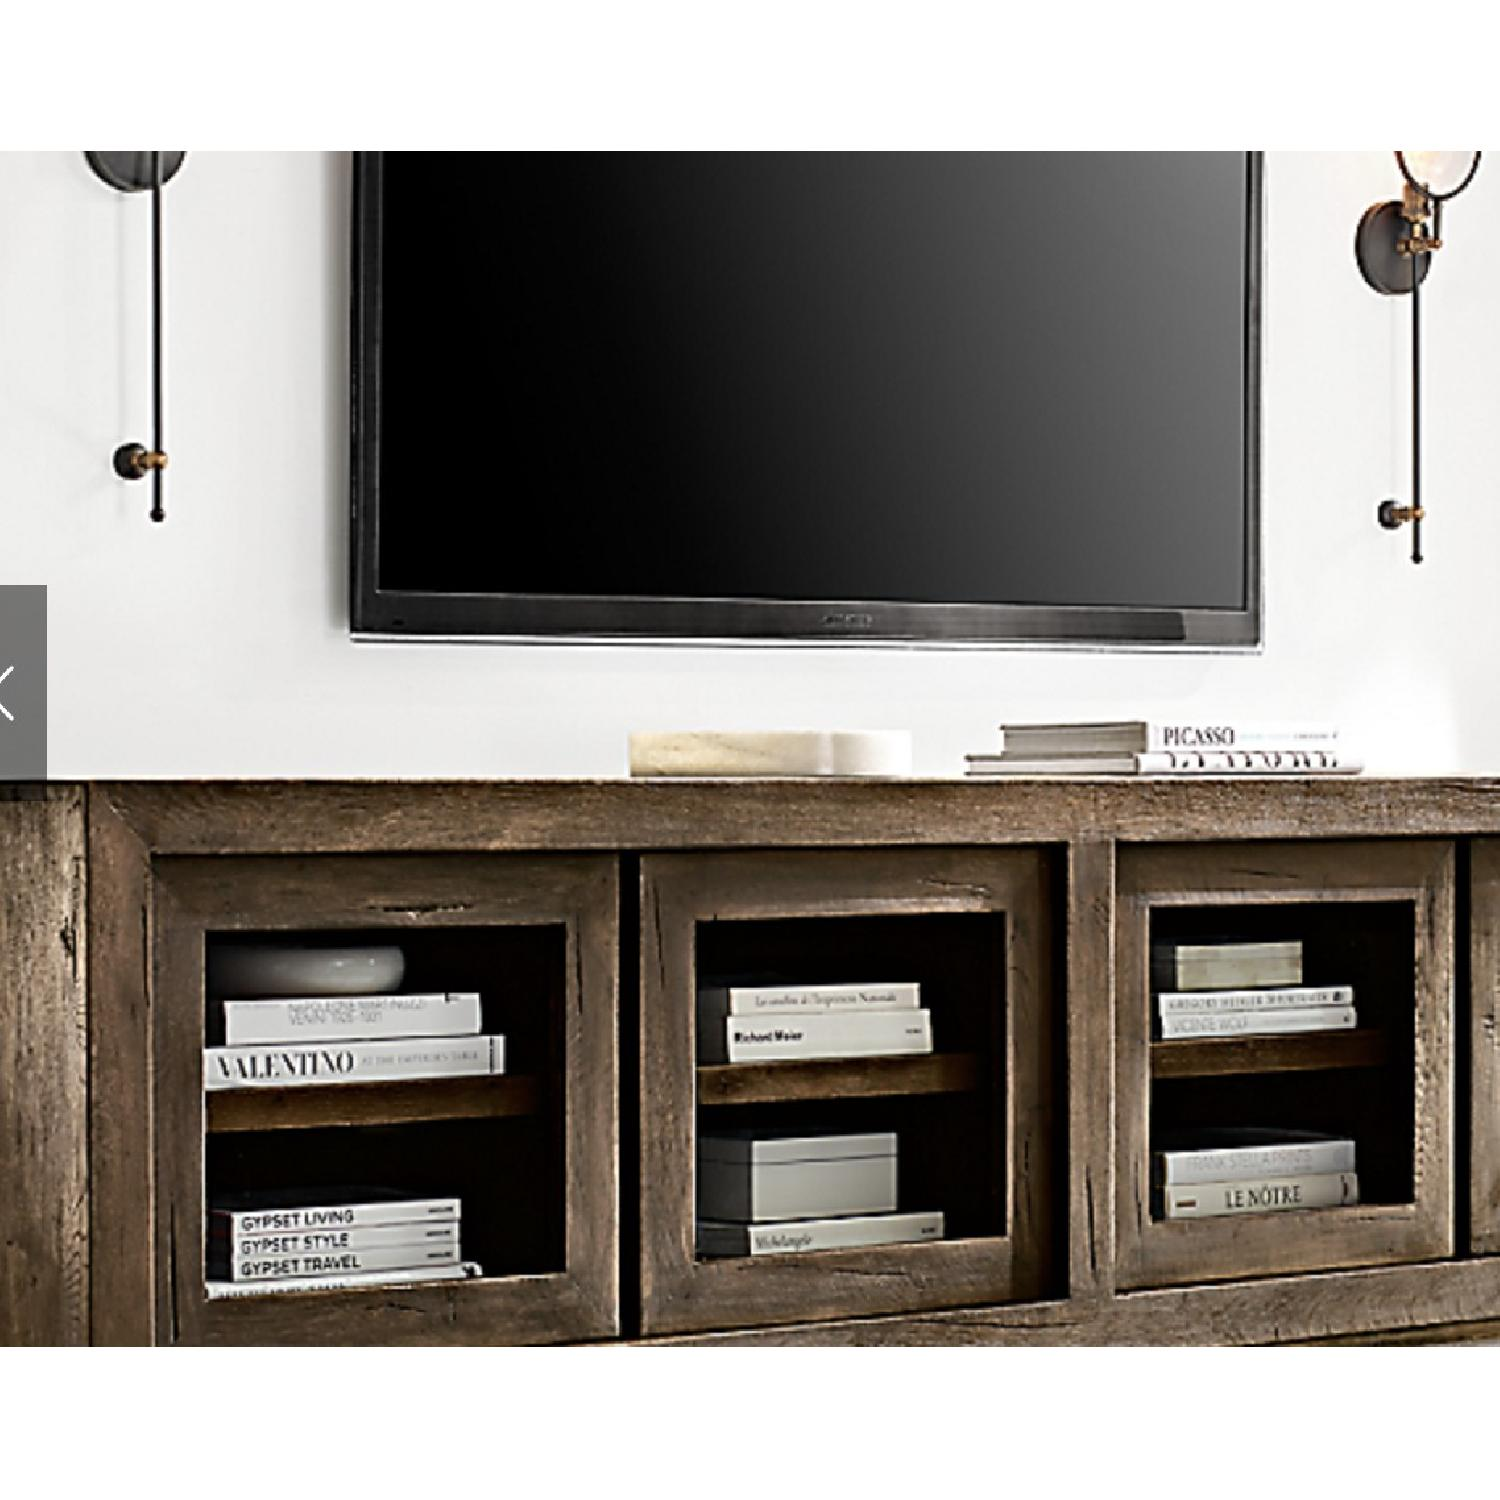 Restoration Hardware Reclaimed Oak Glass 4-Door Cabinet - image-3